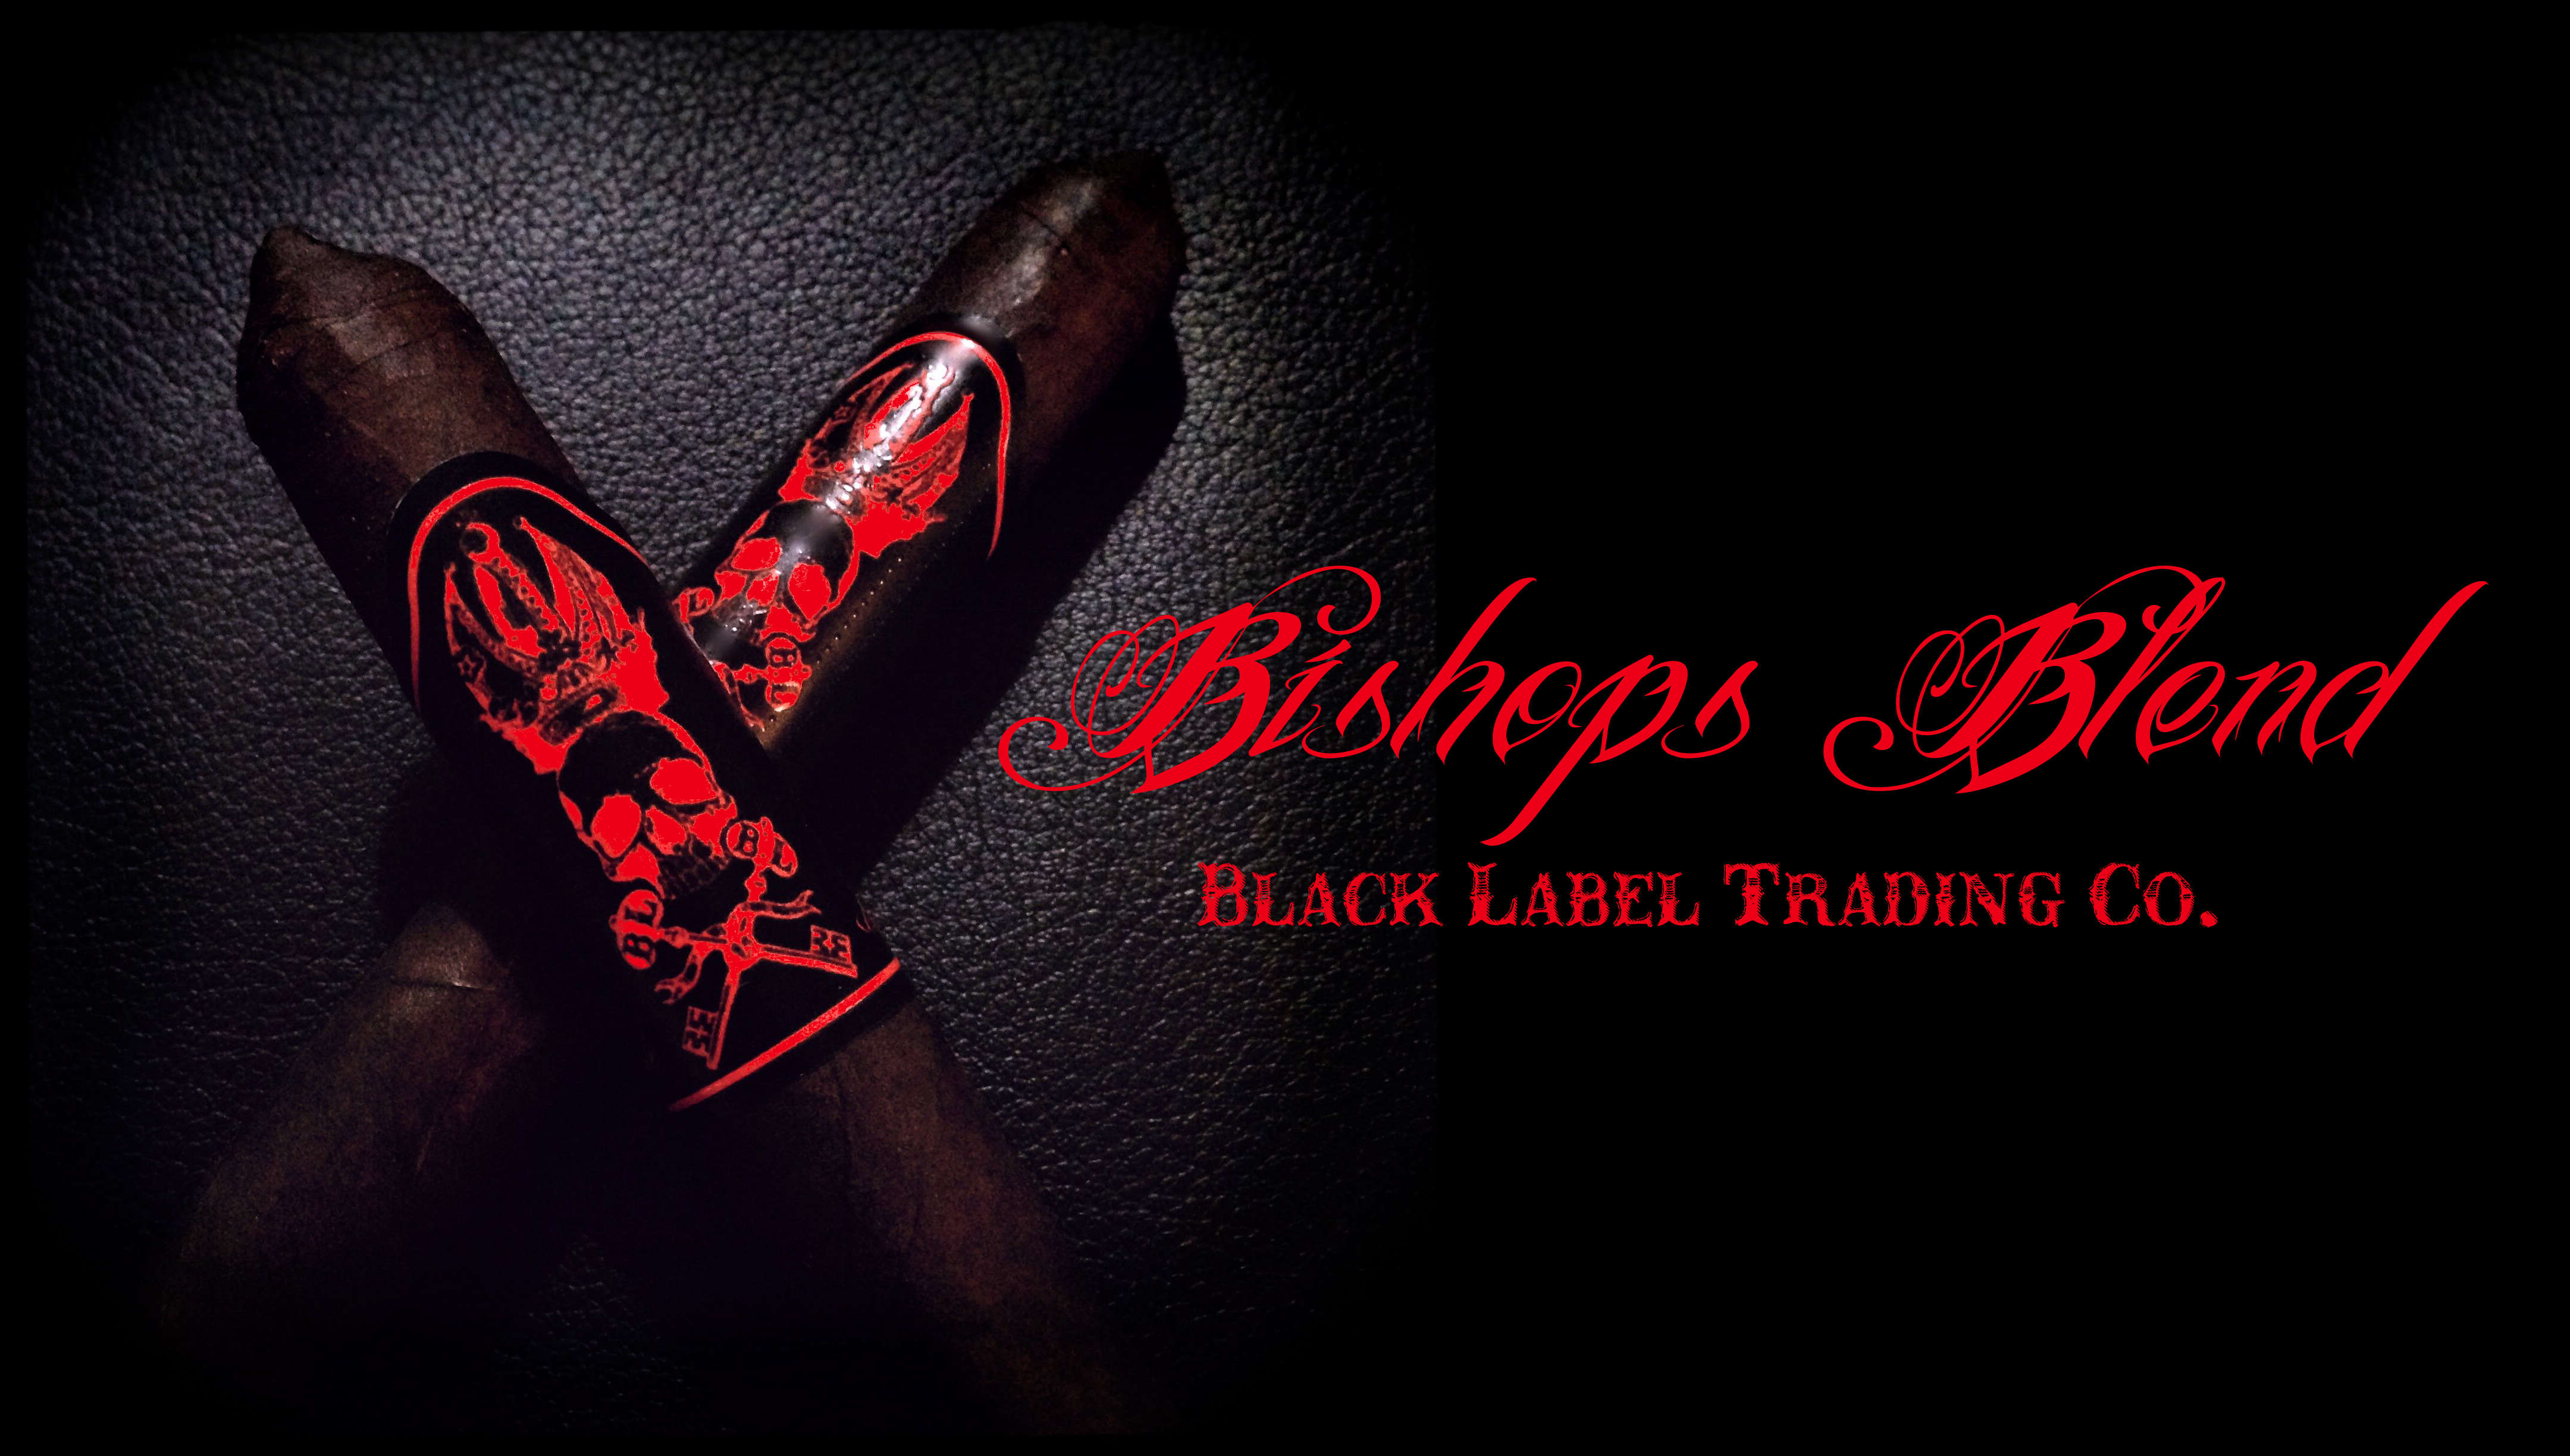 Black_Label_Trading_Company_Bishops_Blend